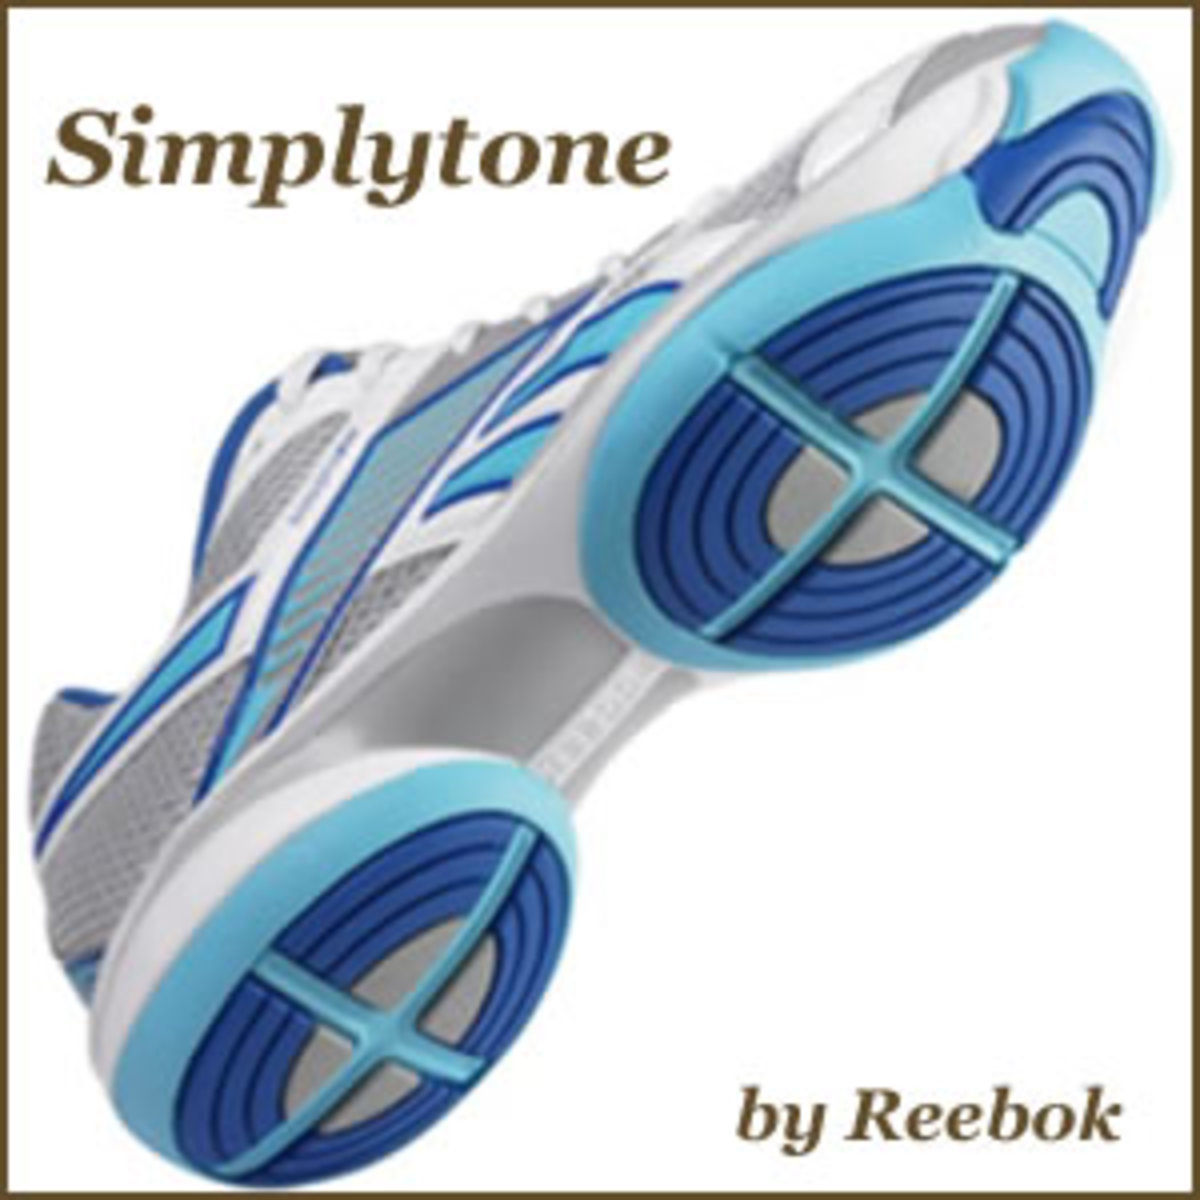 A more robust form of the Easytone, with foam pads, and a split pod design for better traction